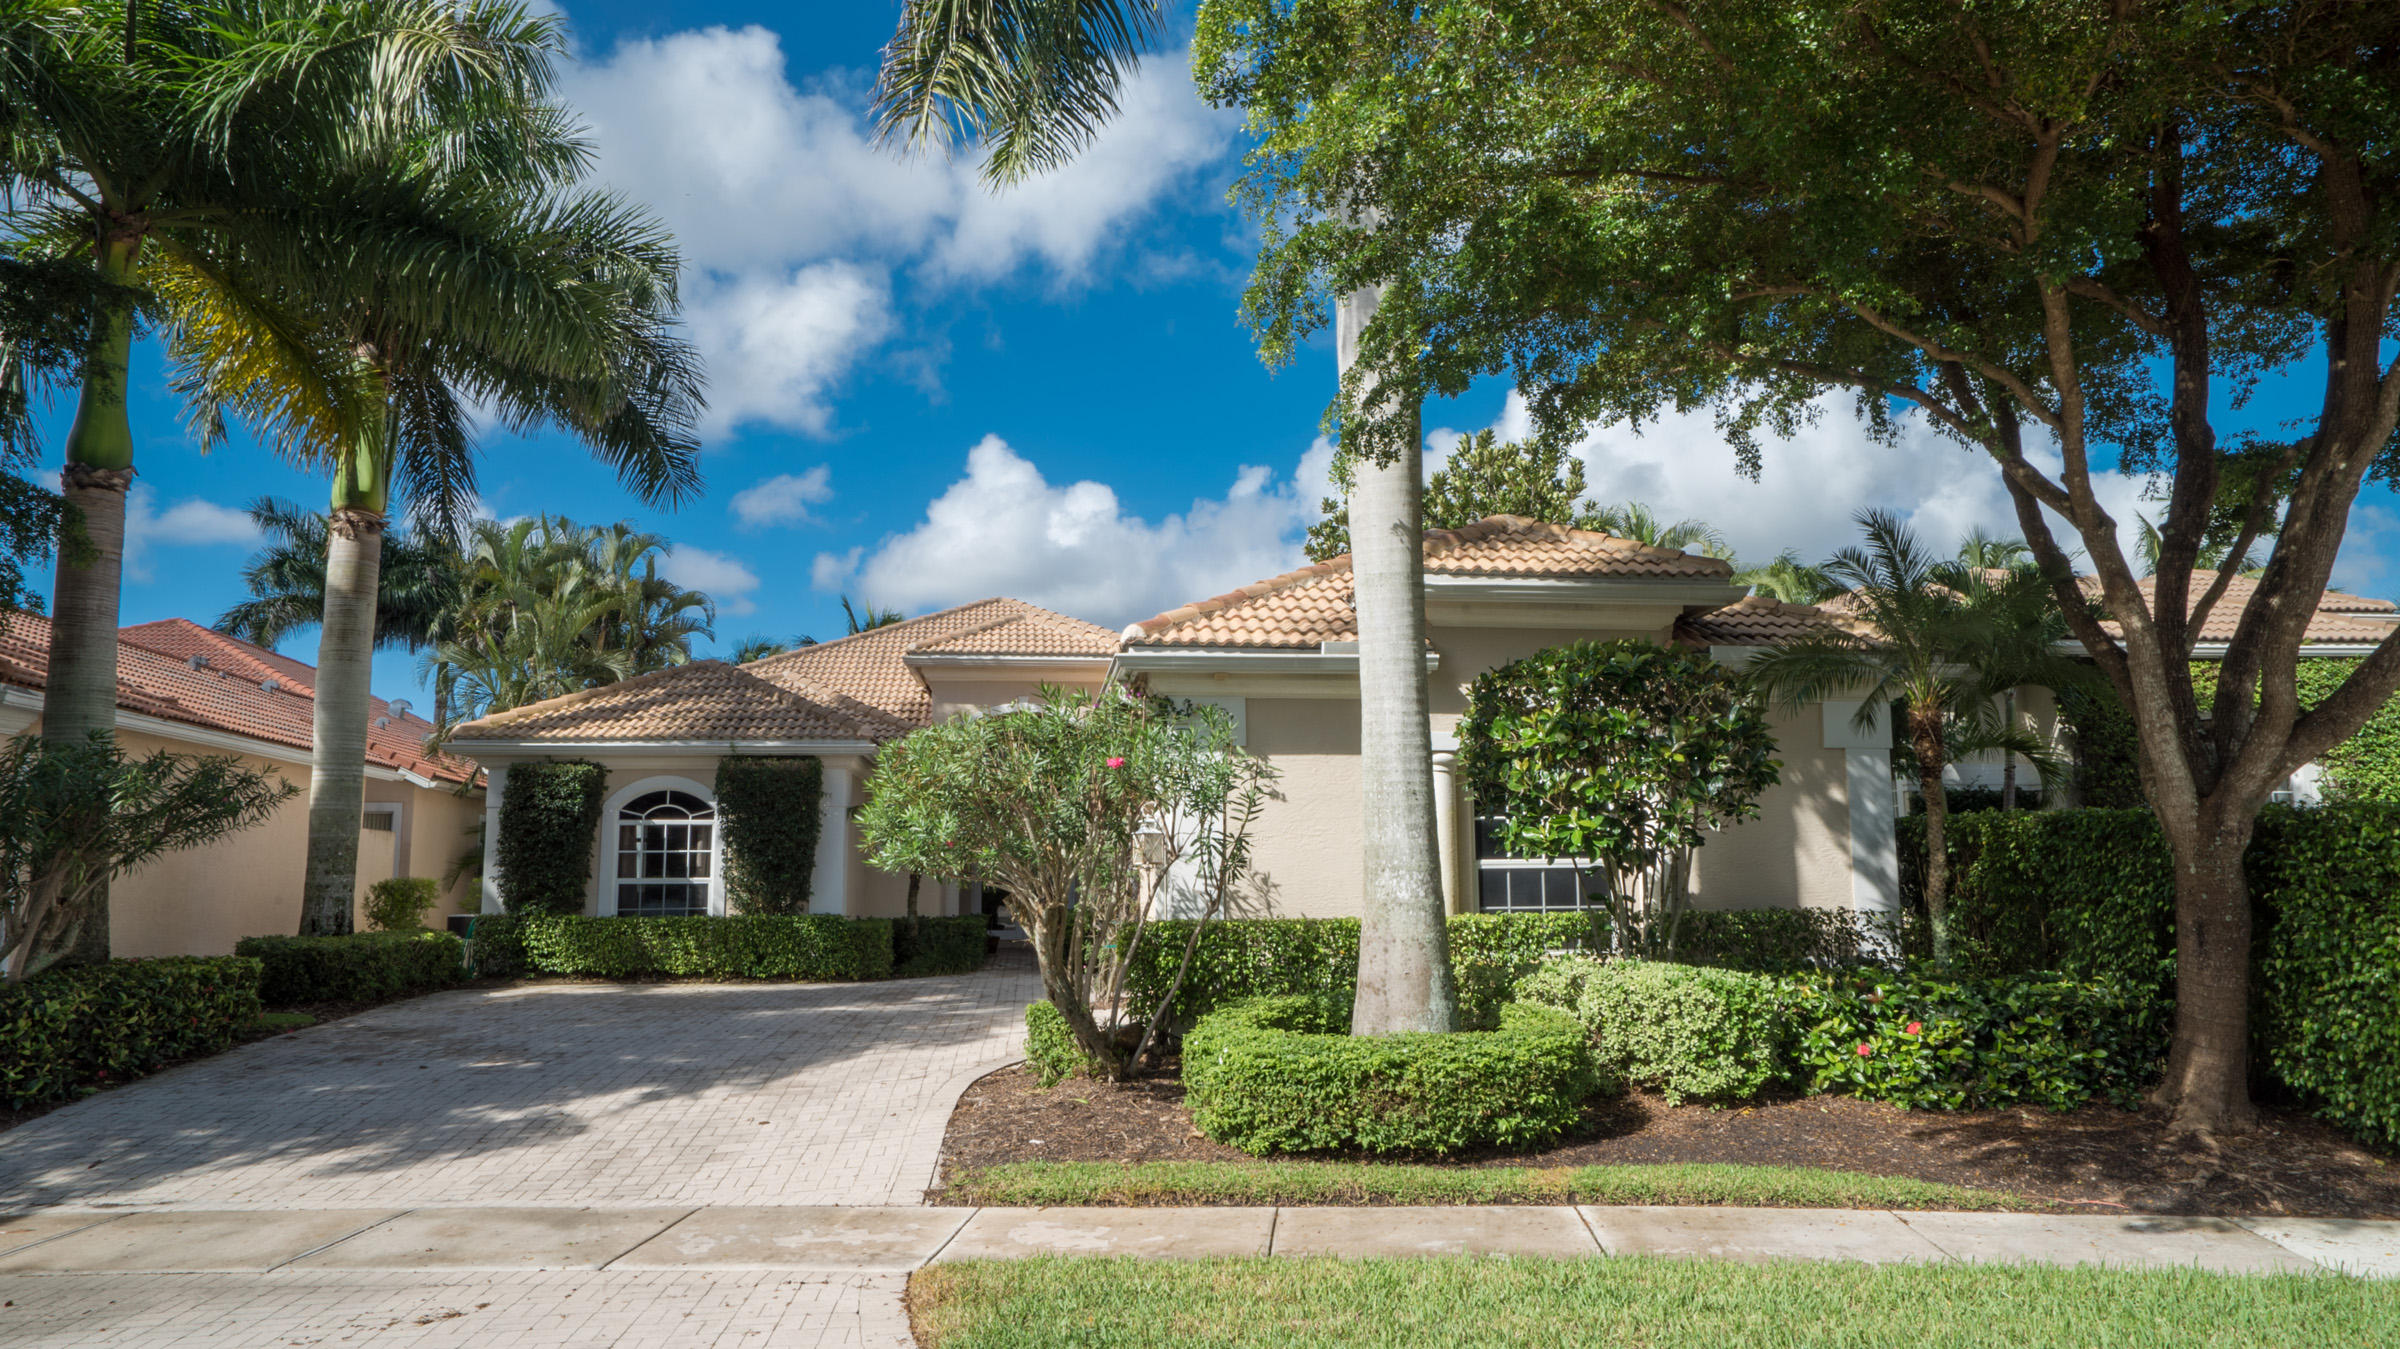 14344 Stroller Way, Wellington, Florida 33414, 4 Bedrooms Bedrooms, ,4 BathroomsBathrooms,Single Family,For Rent,Stroller,1,RX-10543131